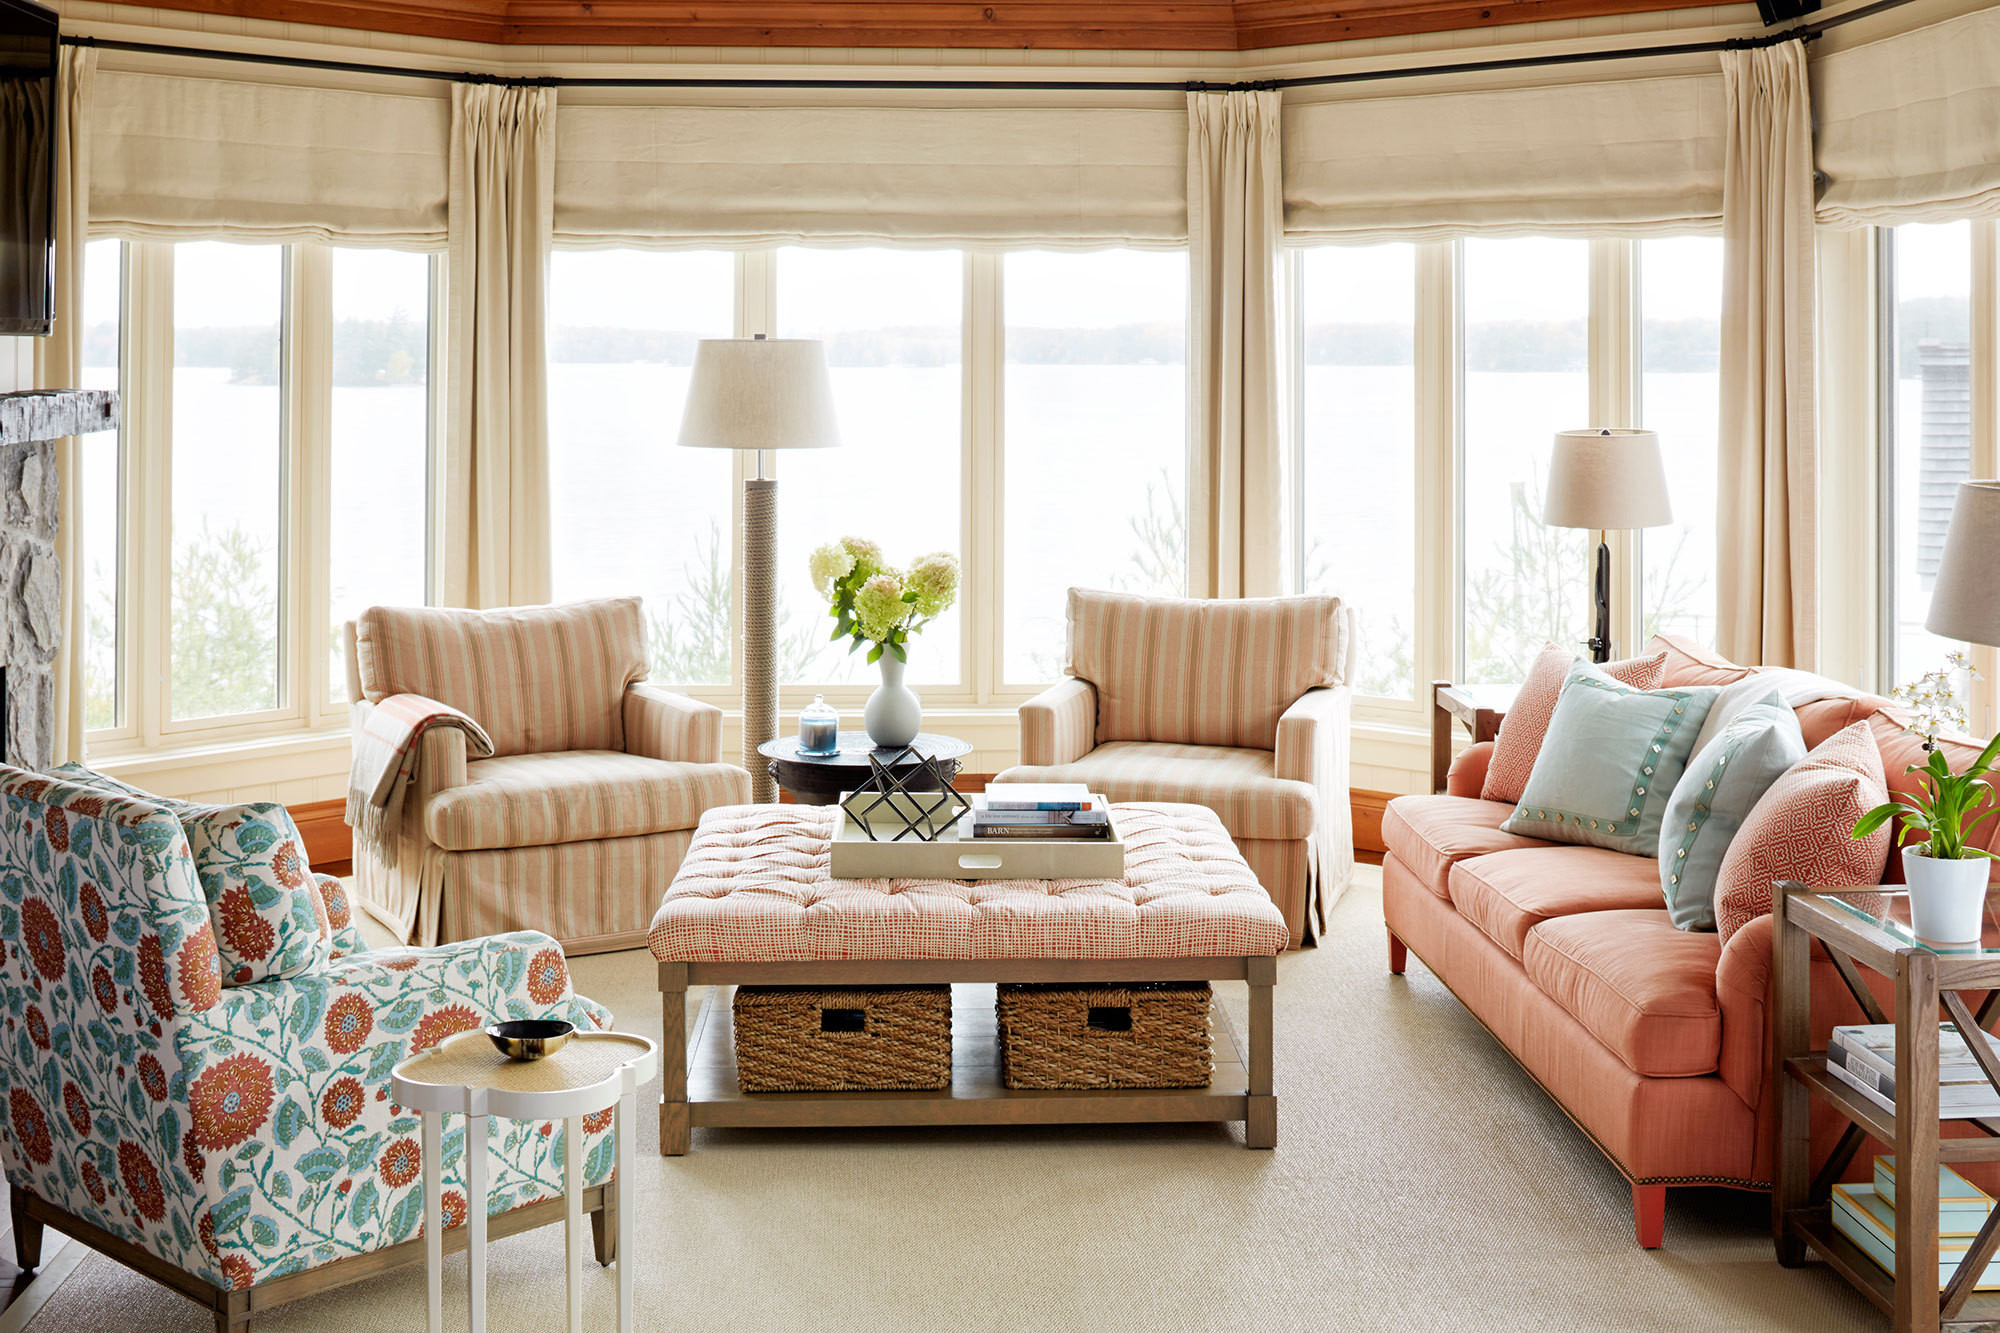 a sophisticated lake house with a subtle palette home tour lonny in the family room overlooking lake joseph upholstered furnishings and understated nbsp hues create